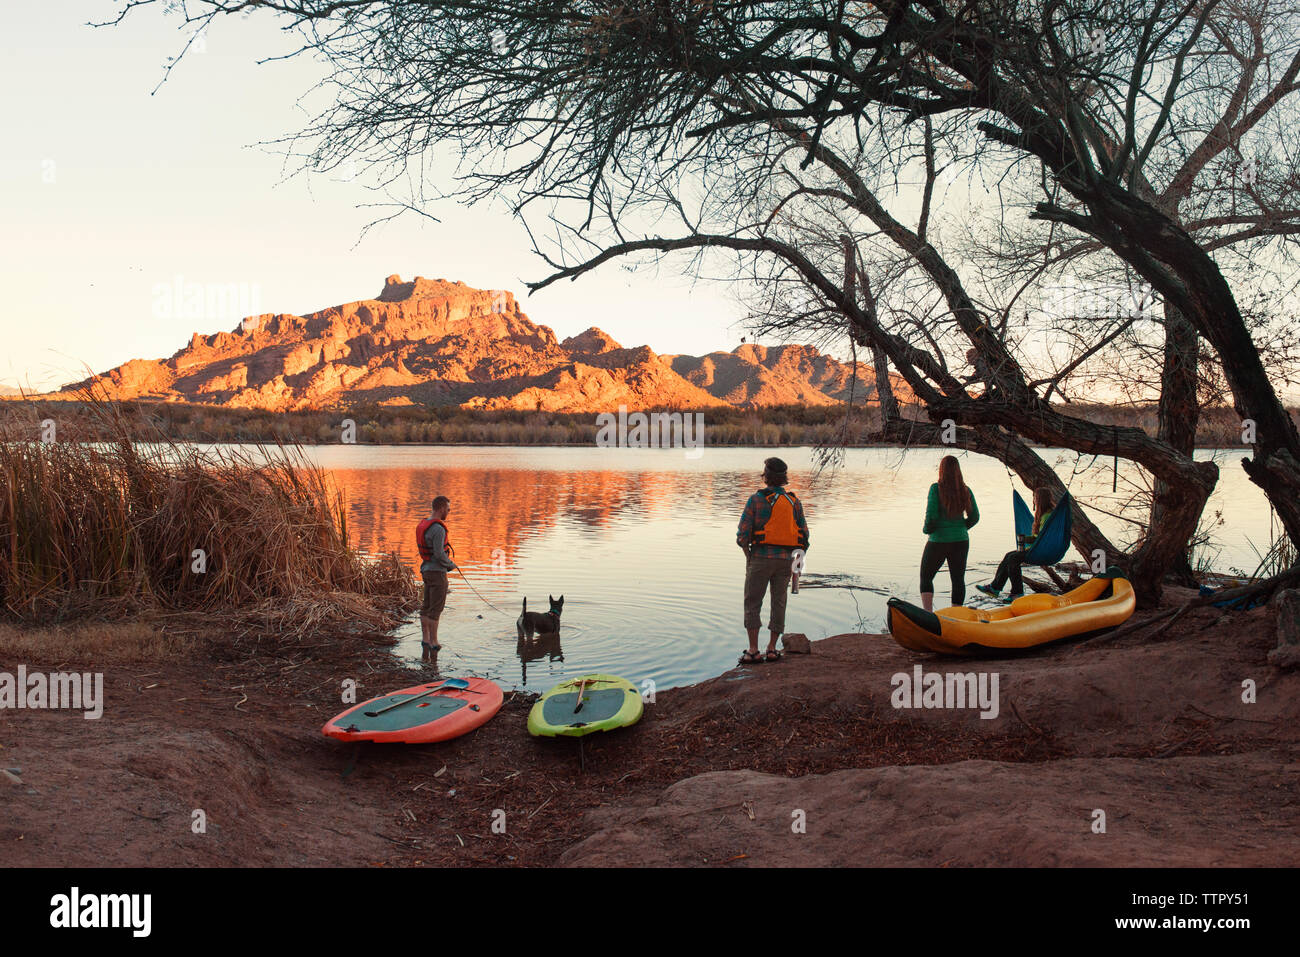 Friends with water sport equipment at lakeshore during dusk - Stock Image